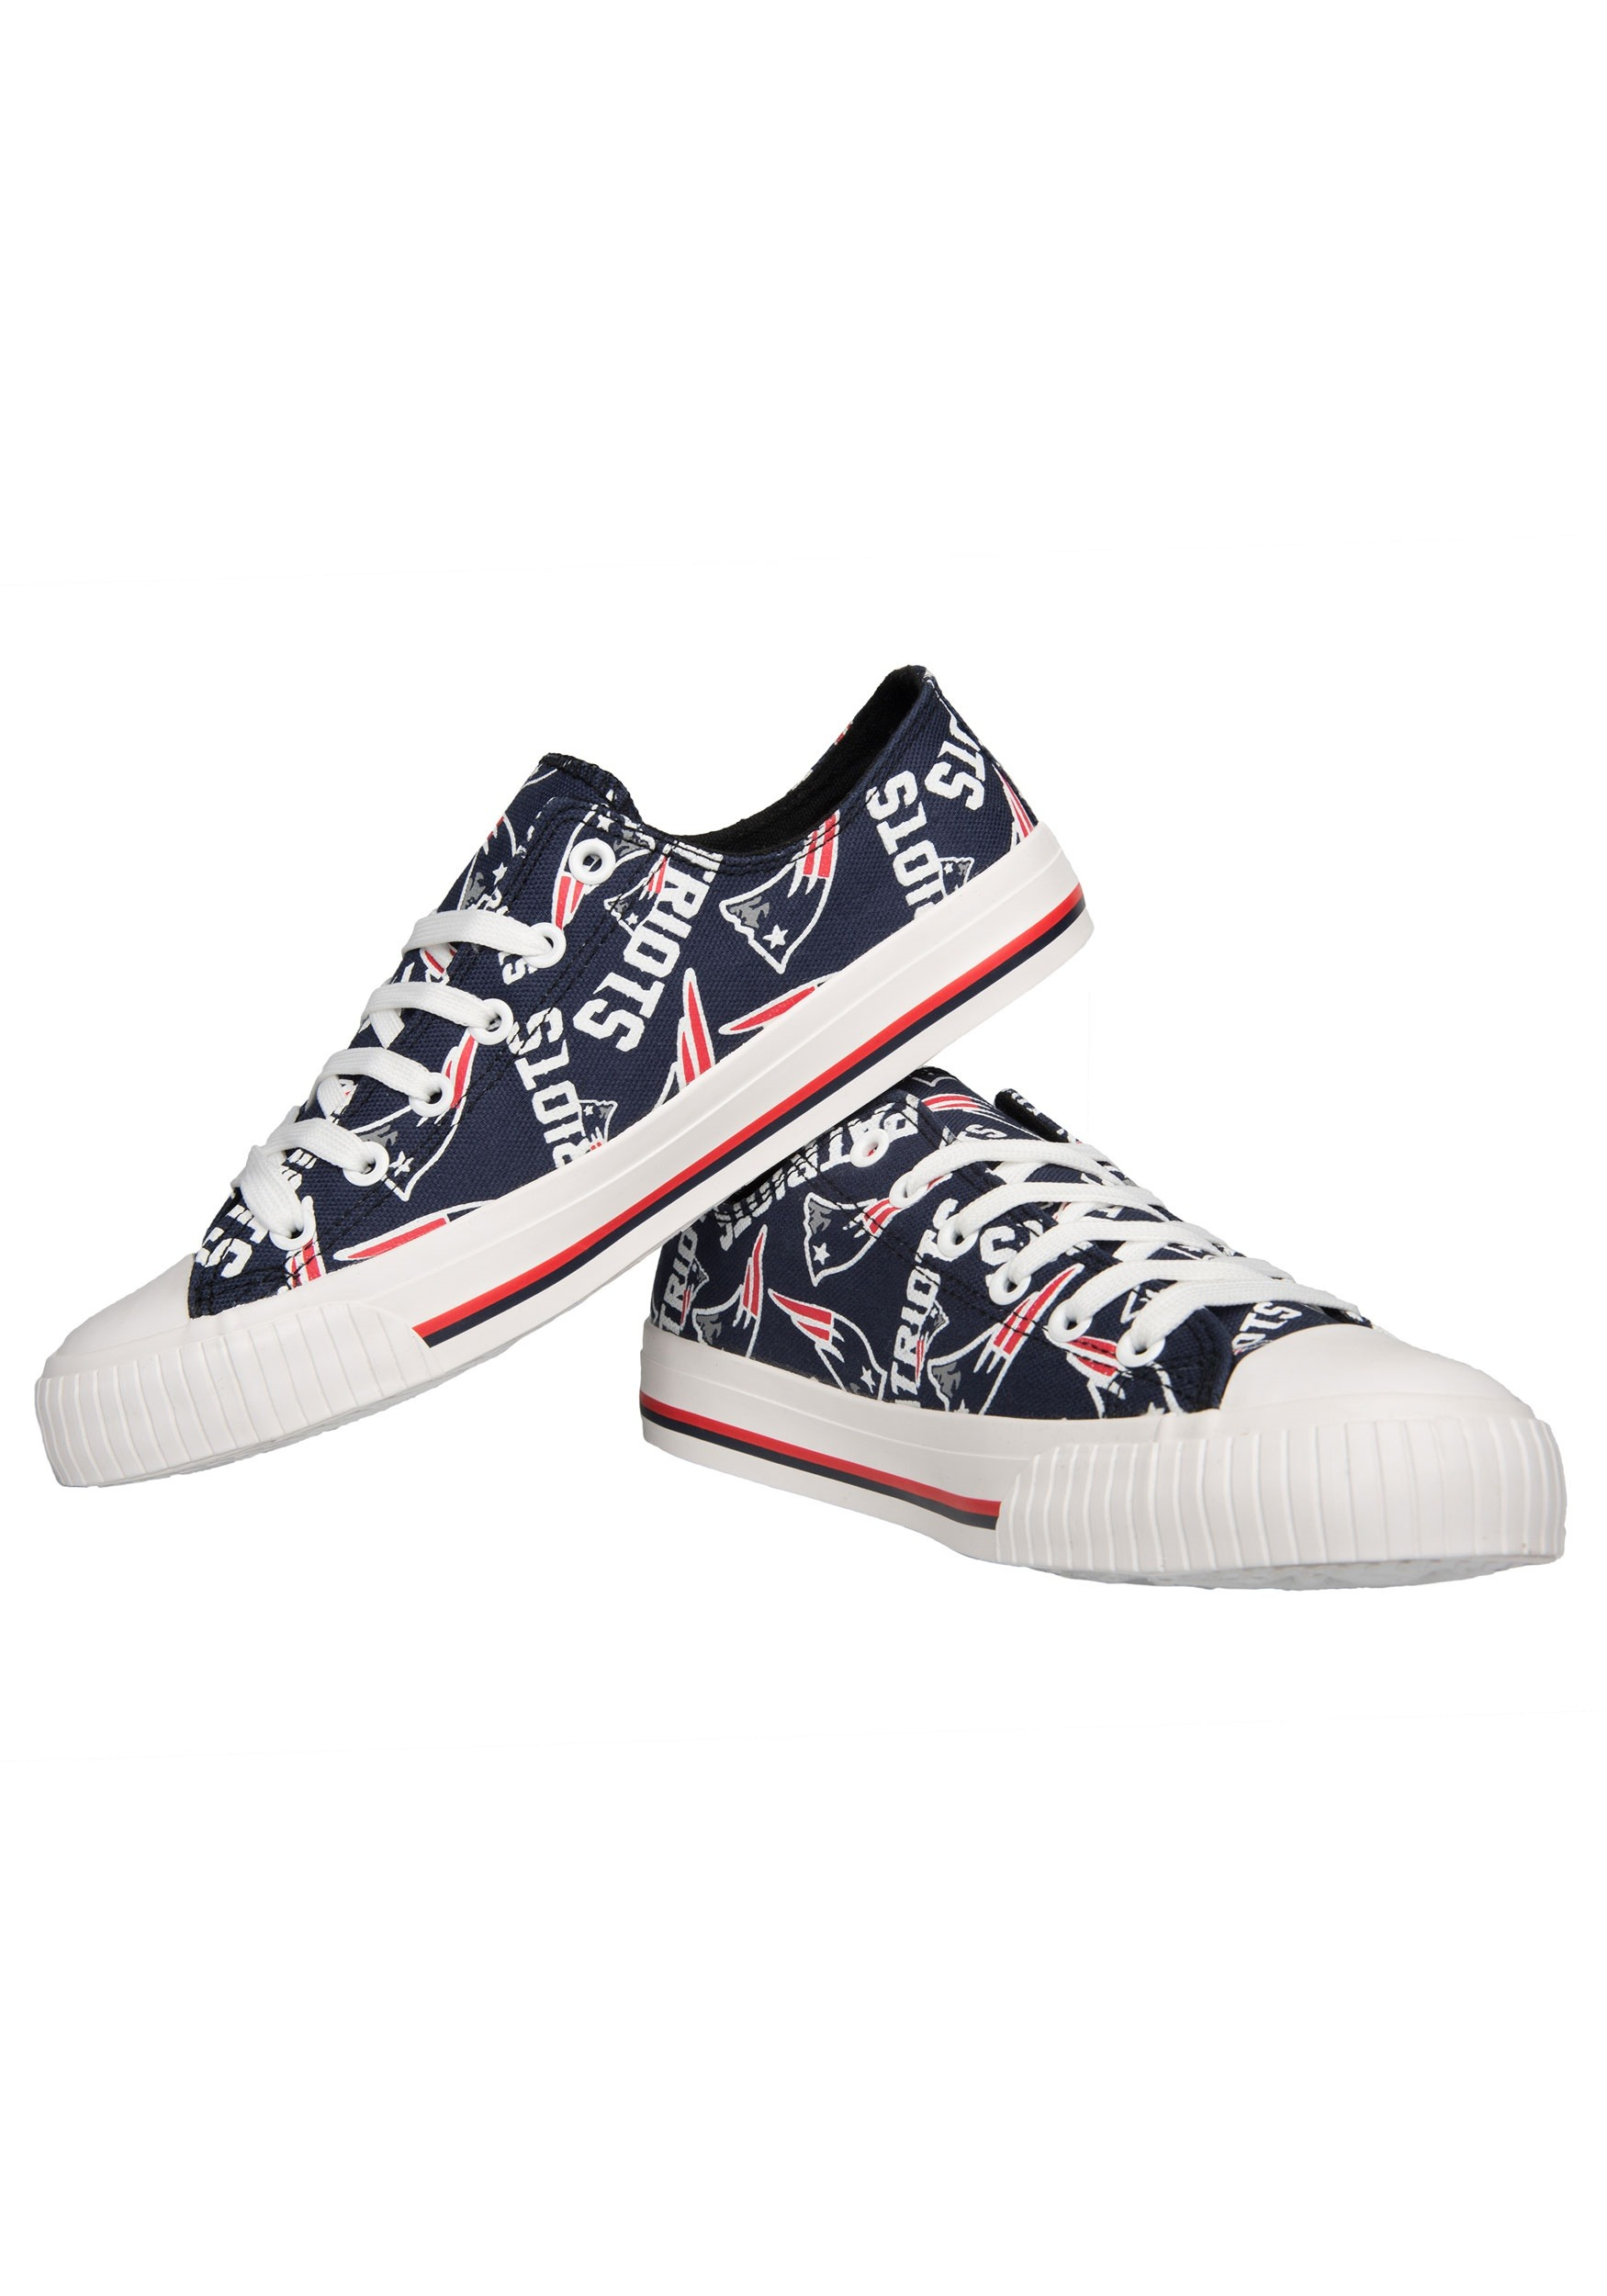 bbb490f67339c New England Patriots Low Top Women's Canvas Shoes